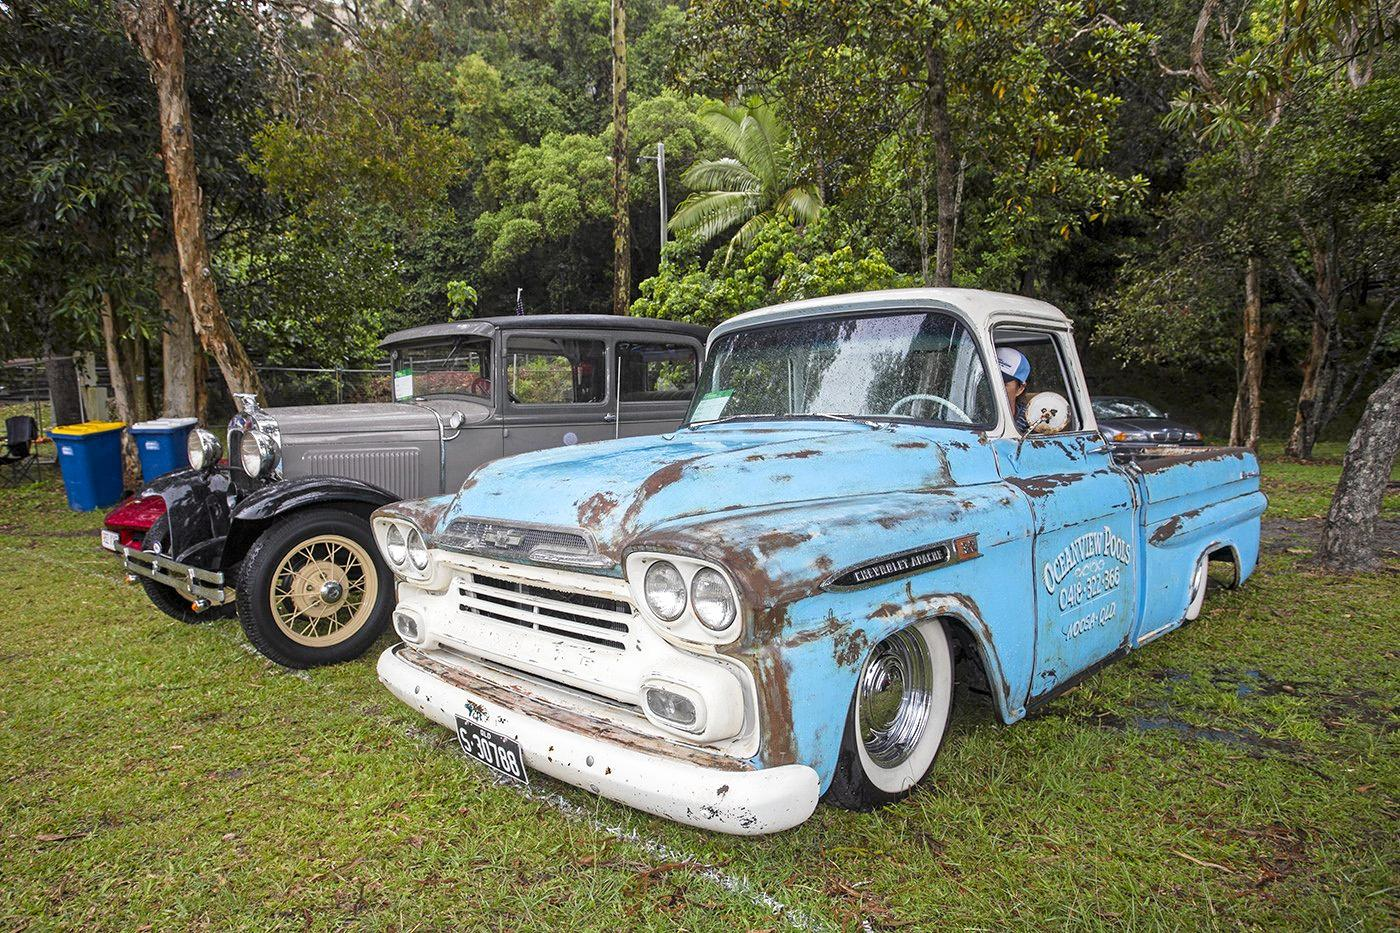 This 1959 Chevy Apache is Oceanview Pools Noosa's work vehicle.